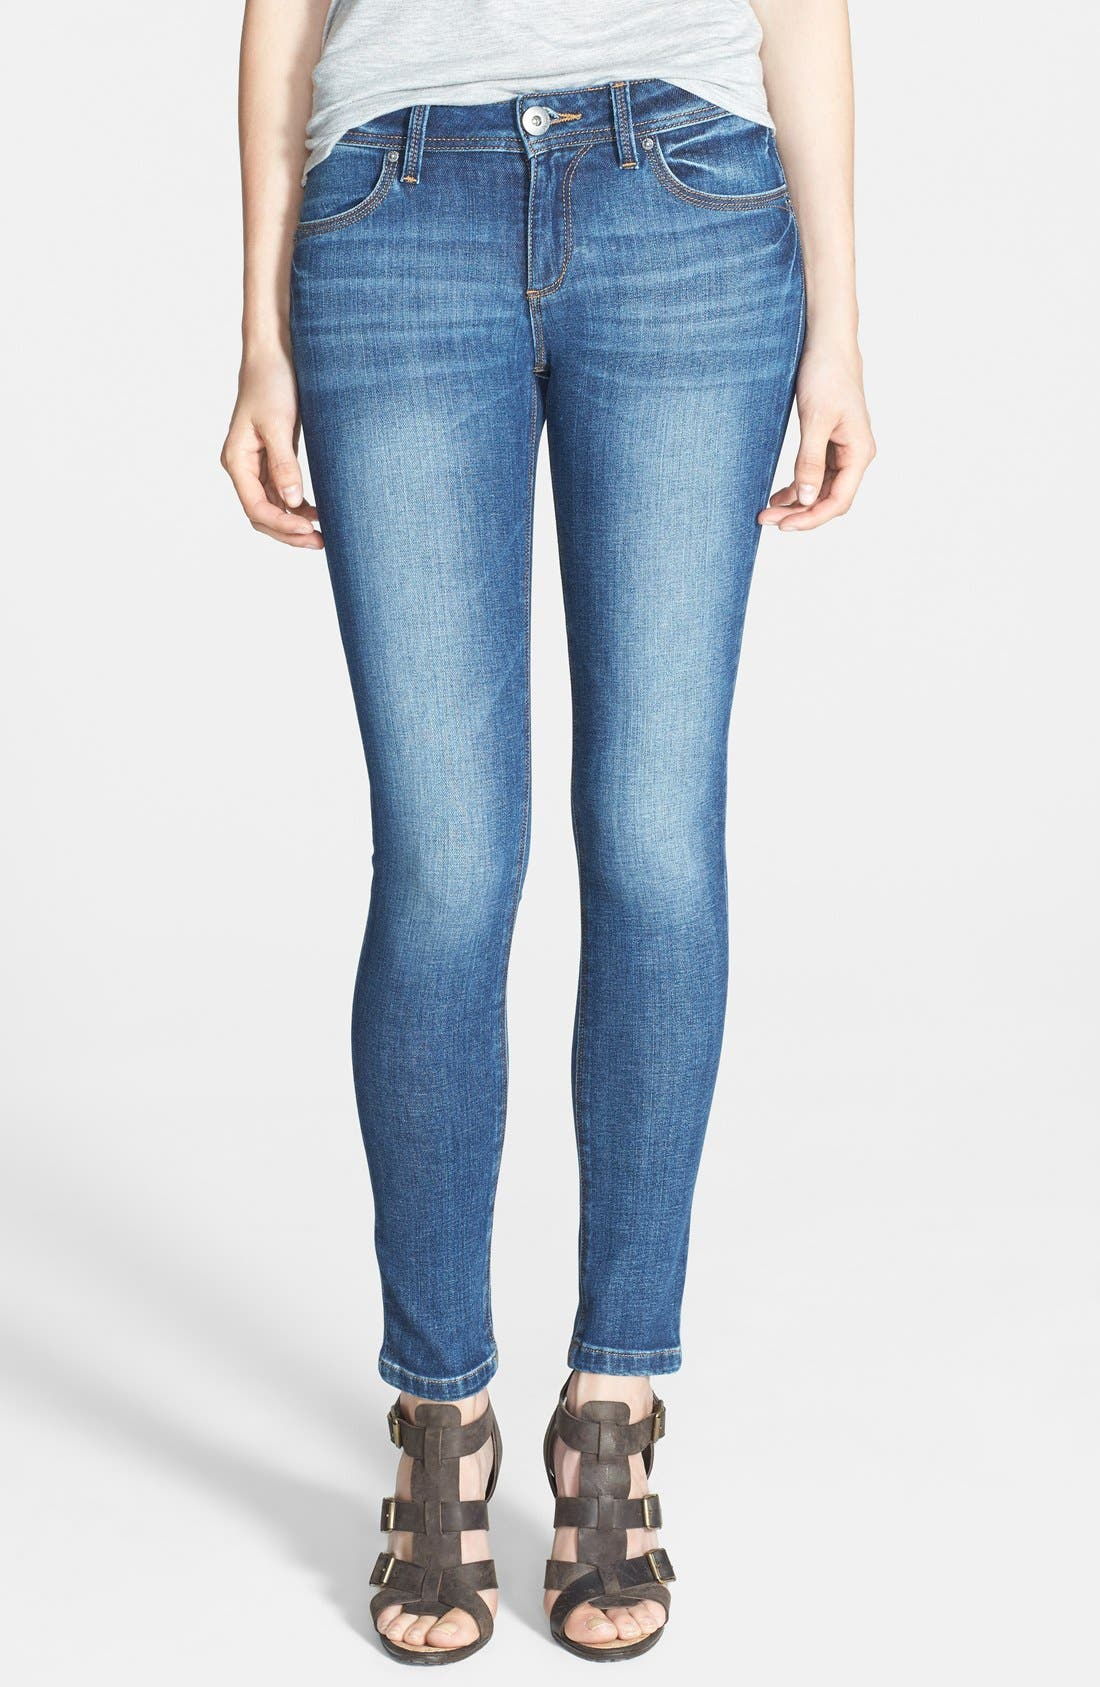 Main Image - DL1961 'Emma' Power Legging Jeans (Cashel)